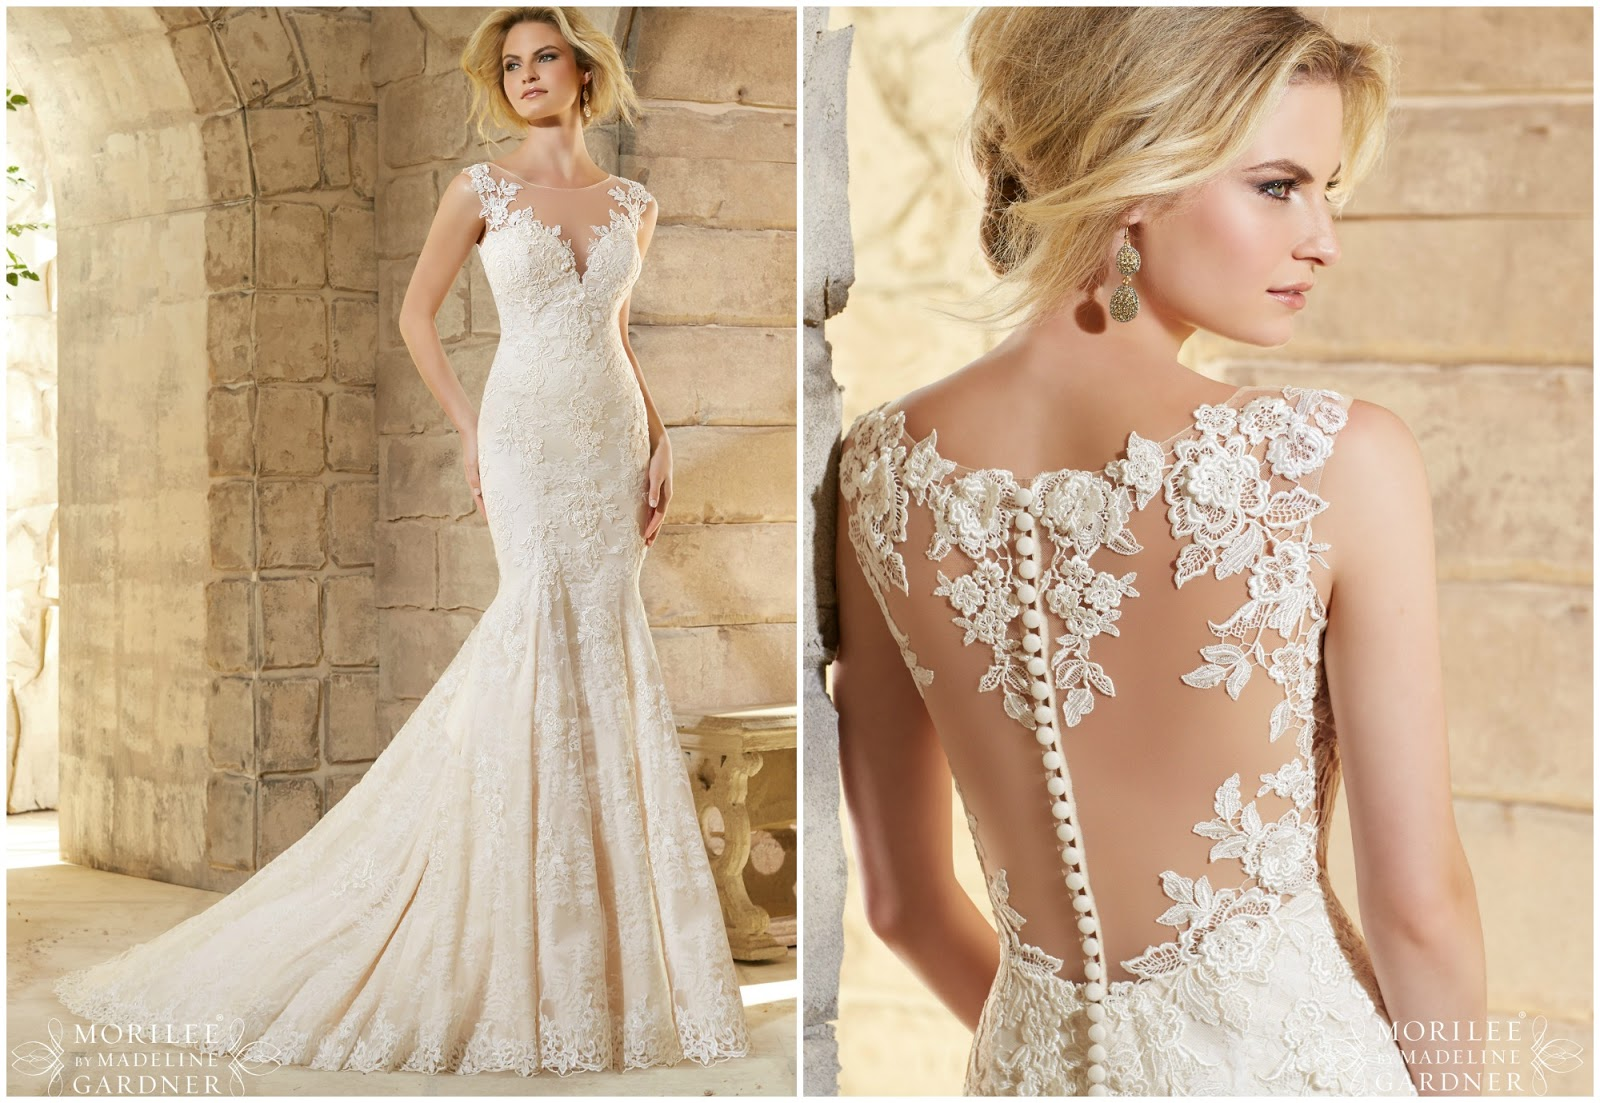 Brides of America Online Store: December 2015